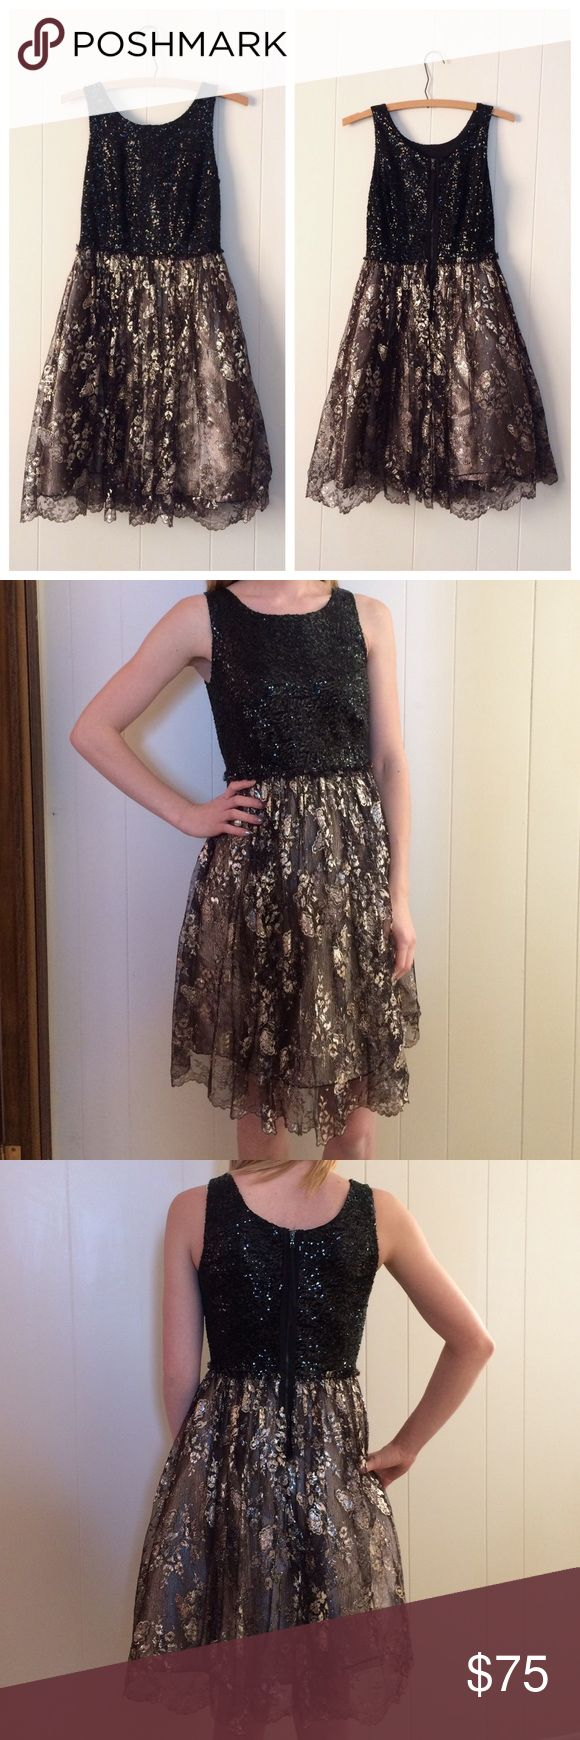 Anthropologie Leifsdottir Black & Gold Dress Anthropologie Leifsdottir black & gold metallic dress. Black sequin top & the bottom has gold underneath a tulle floral black & gold layer. Zips up the back. Preloved and has a spot underneath the tool in the gold fabric where the stitching came undone & could easily be sewn back together & is not noticeable when wearing, picture in collage above. Size 0. If you have any questions please ask before buying. *Colors may vary slightly from pictures…